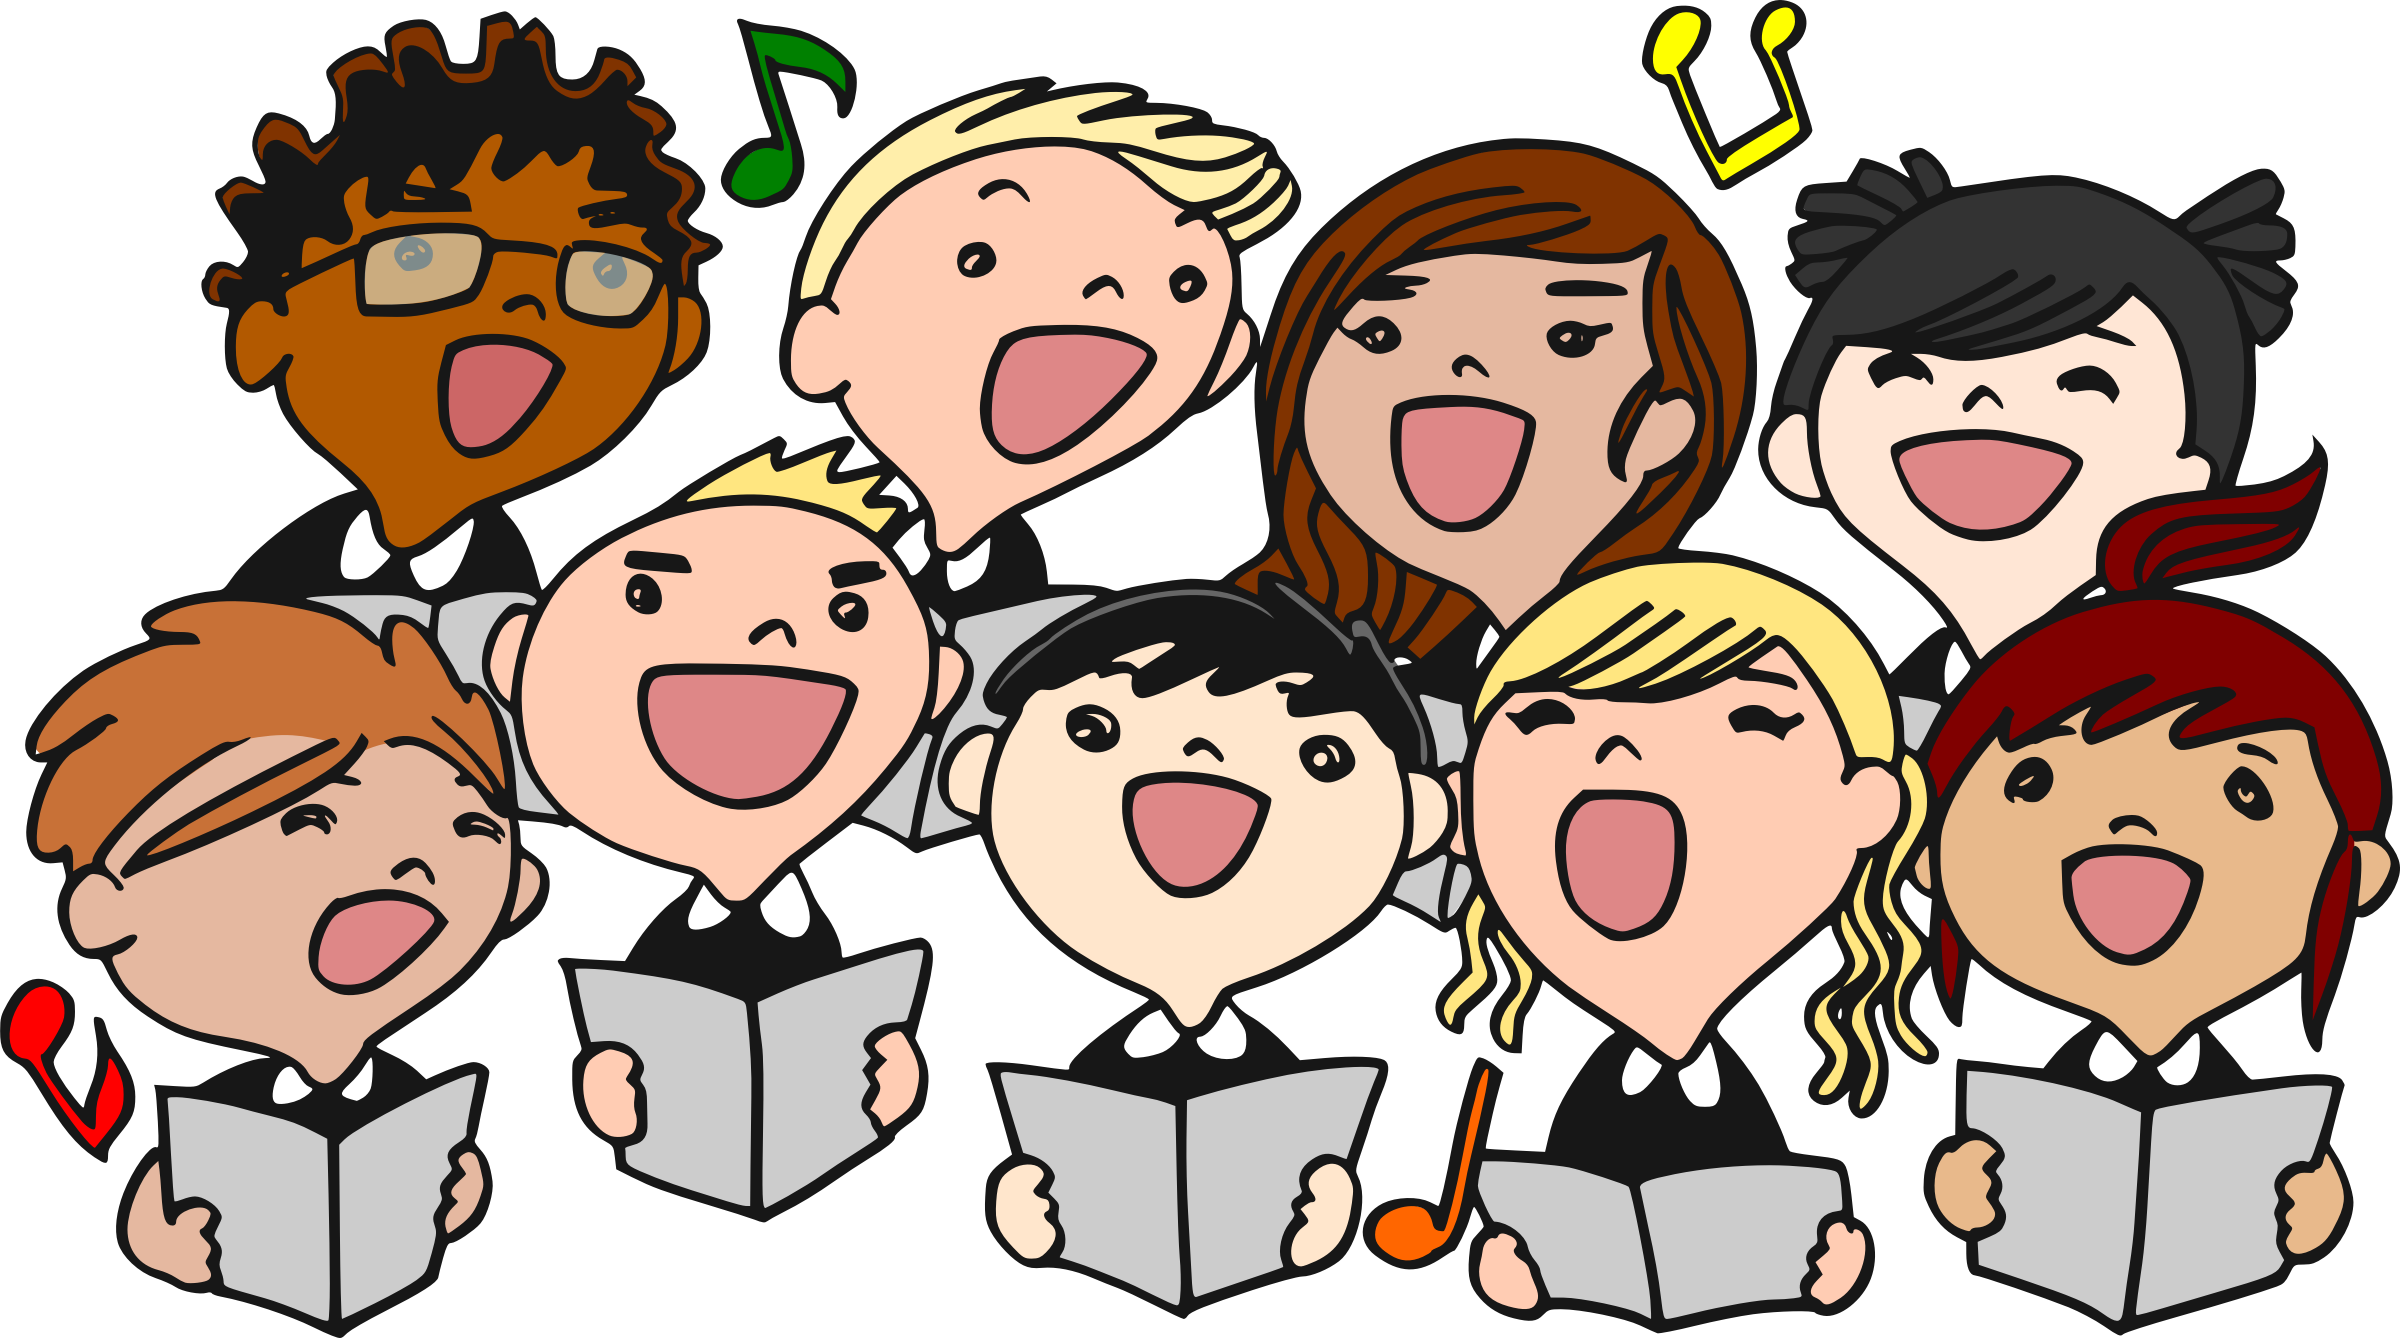 Choir clipart to do. Children choral big image